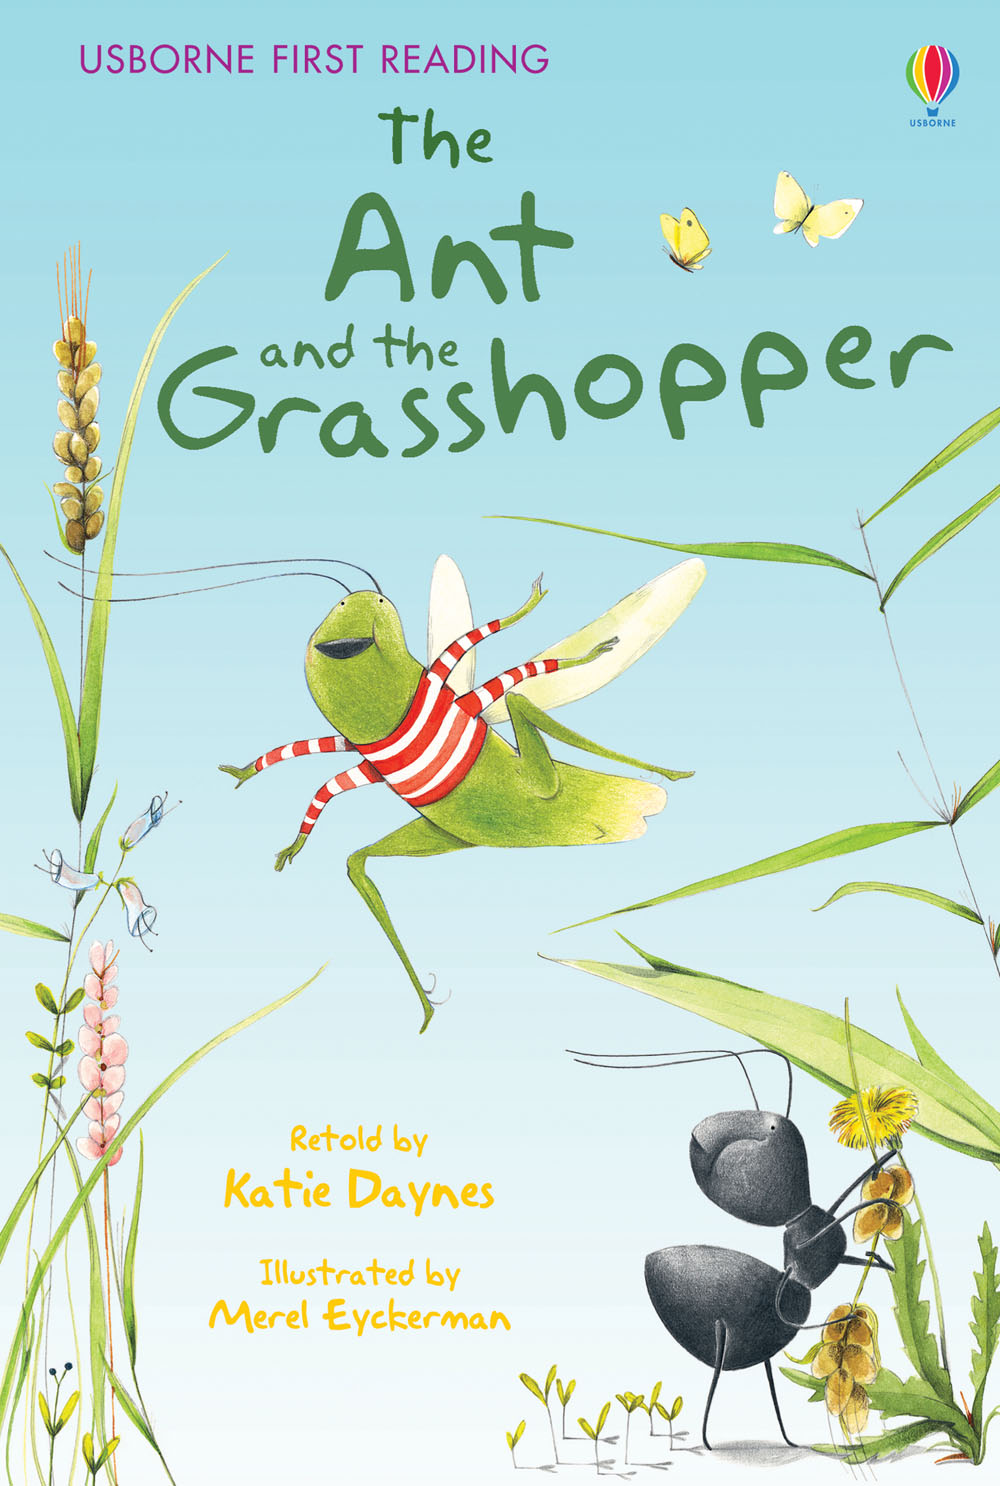 photo about The Ant and the Grasshopper Story Printable known as The Ant and the Grhopper\u201d at Usborne Childrens Guides